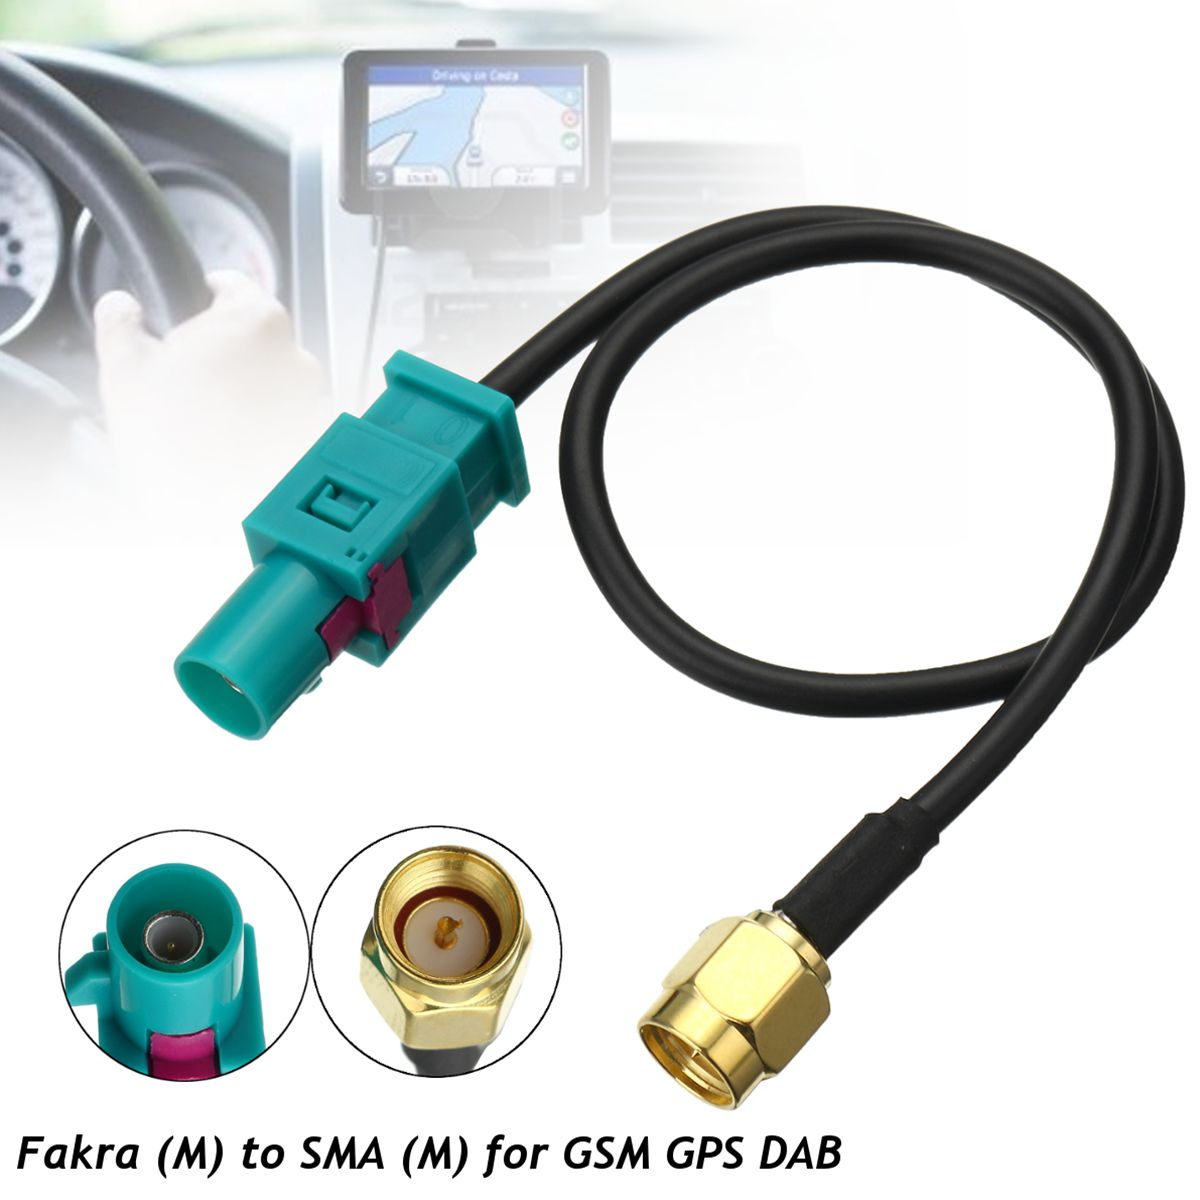 1PC Car Antenna Adapter Plug Cable Fakra Z (Male) to SMA (Male) For GSM GPS DAB Universal 21.5cm(China)